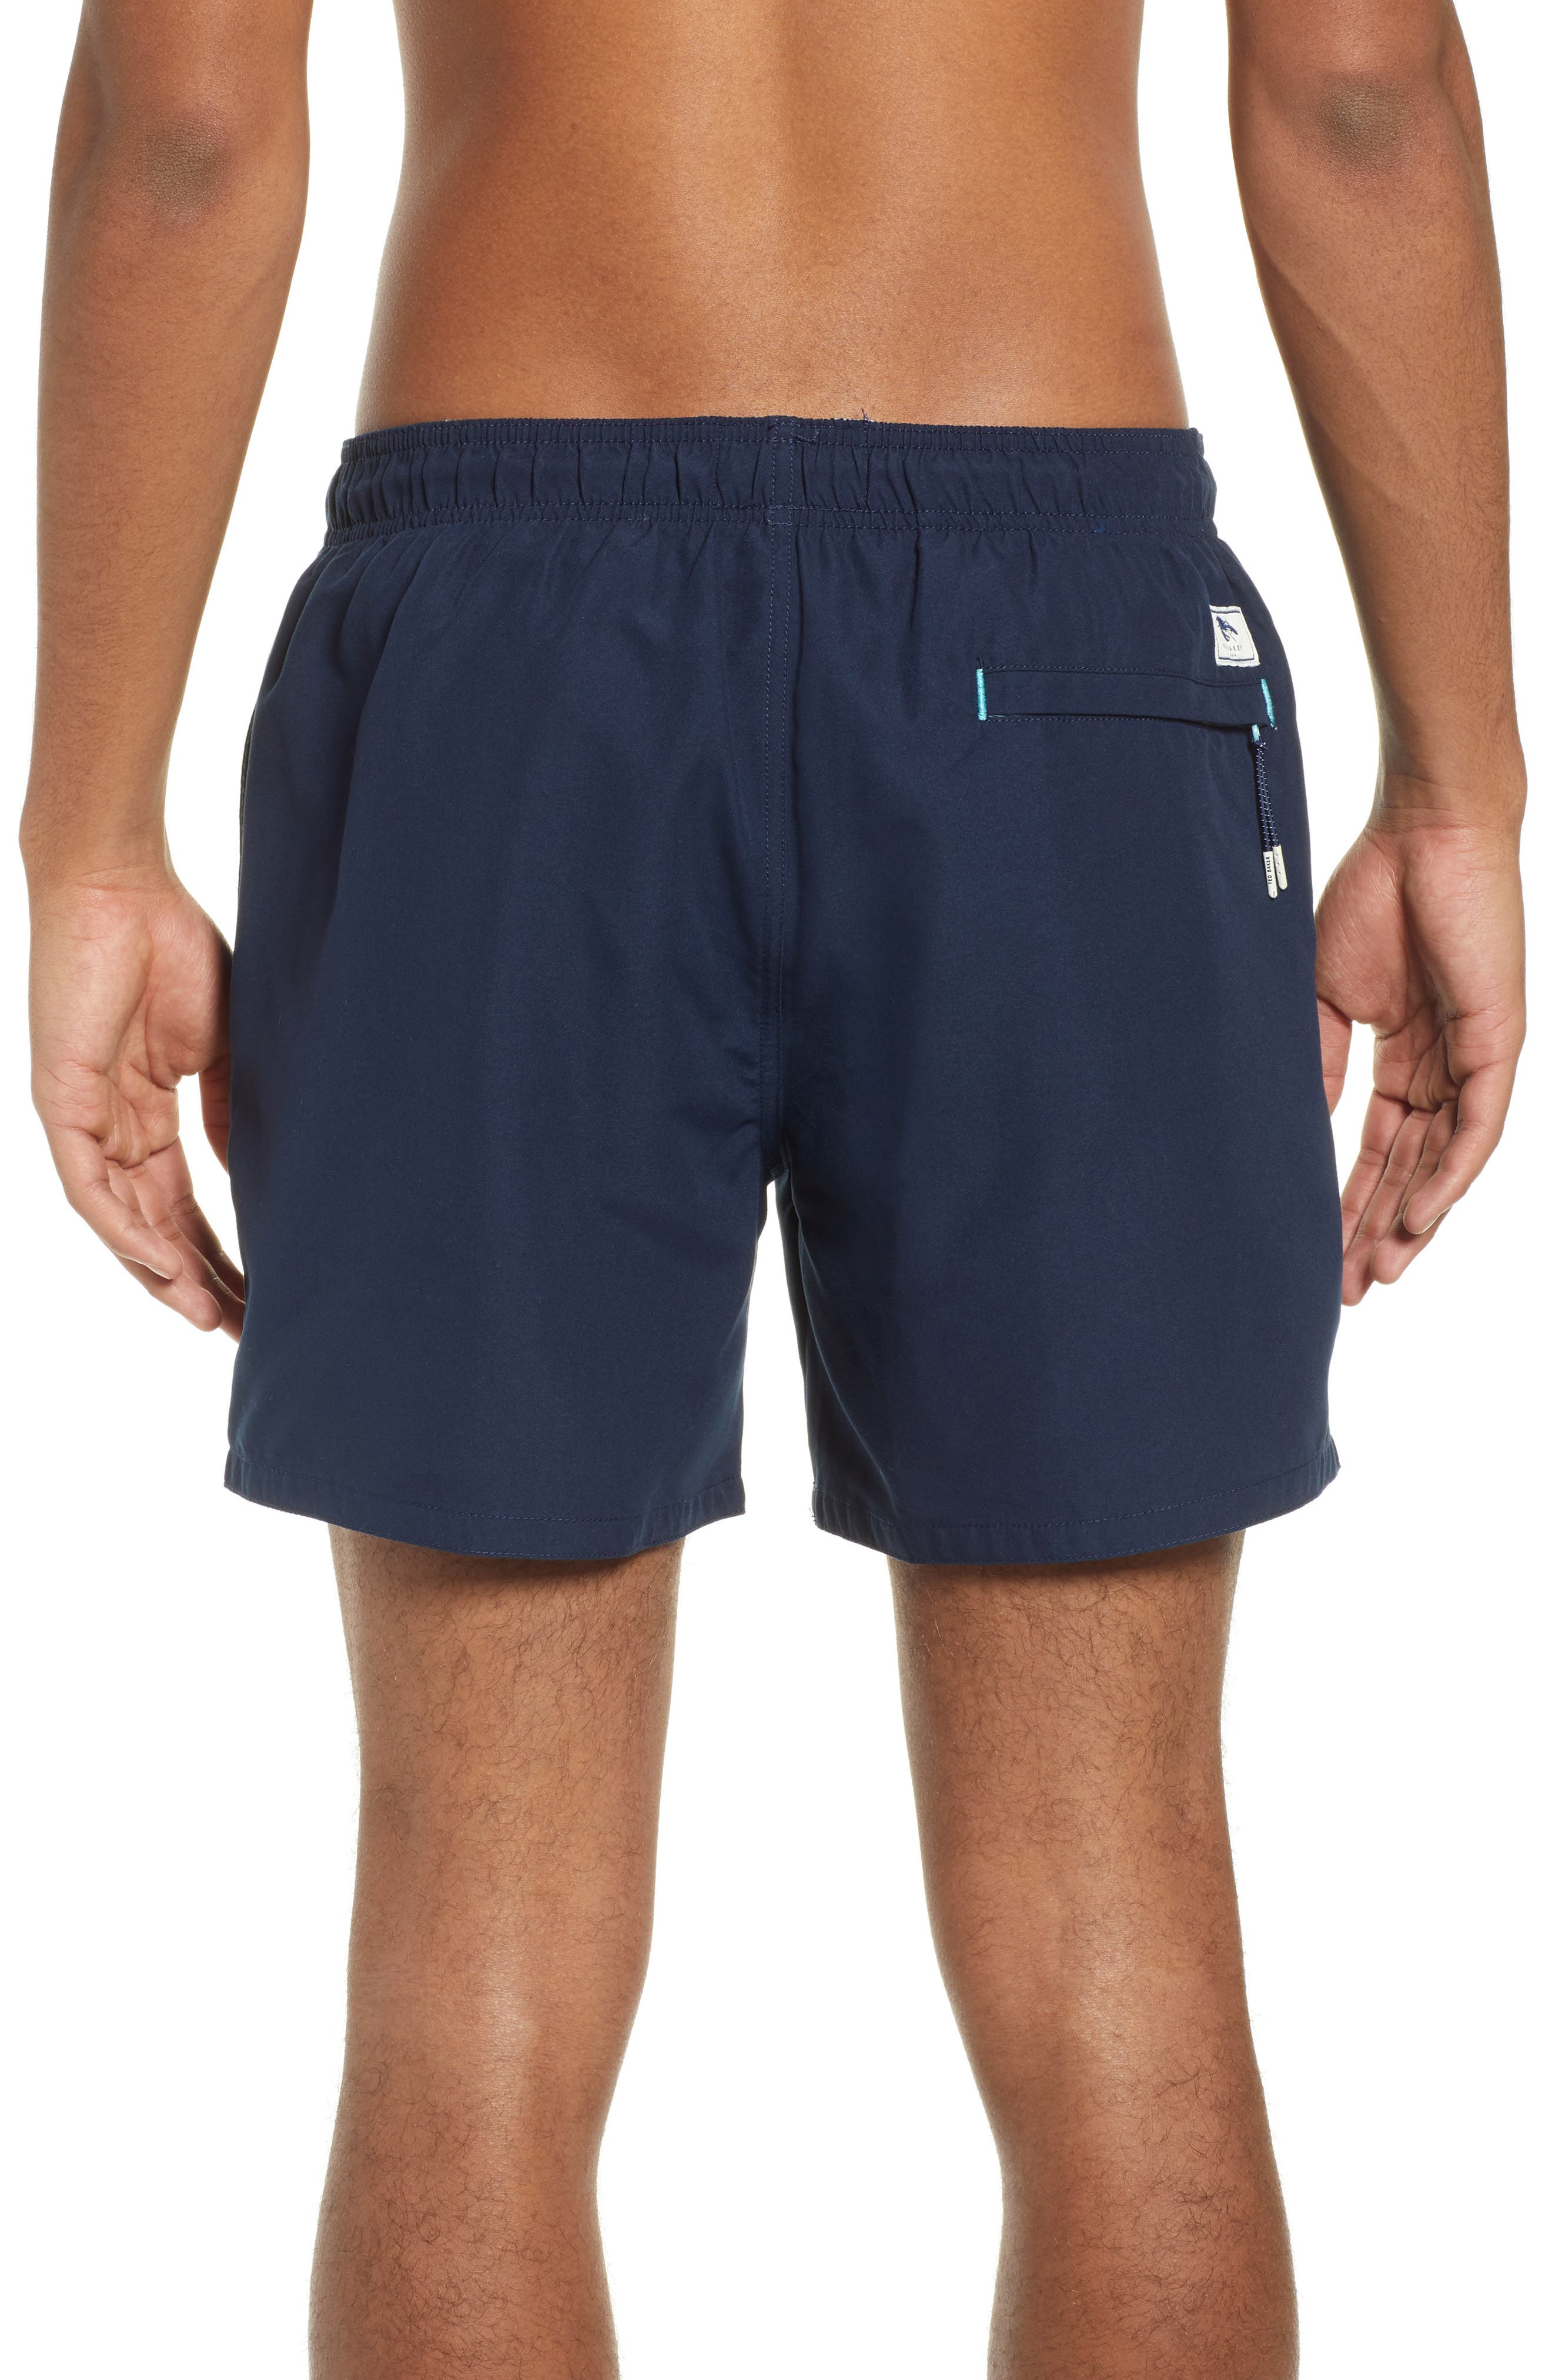 TED BAKER LONDON, Plankton Slim Fit Swim Trunks, Alternate thumbnail 2, color, NAVY